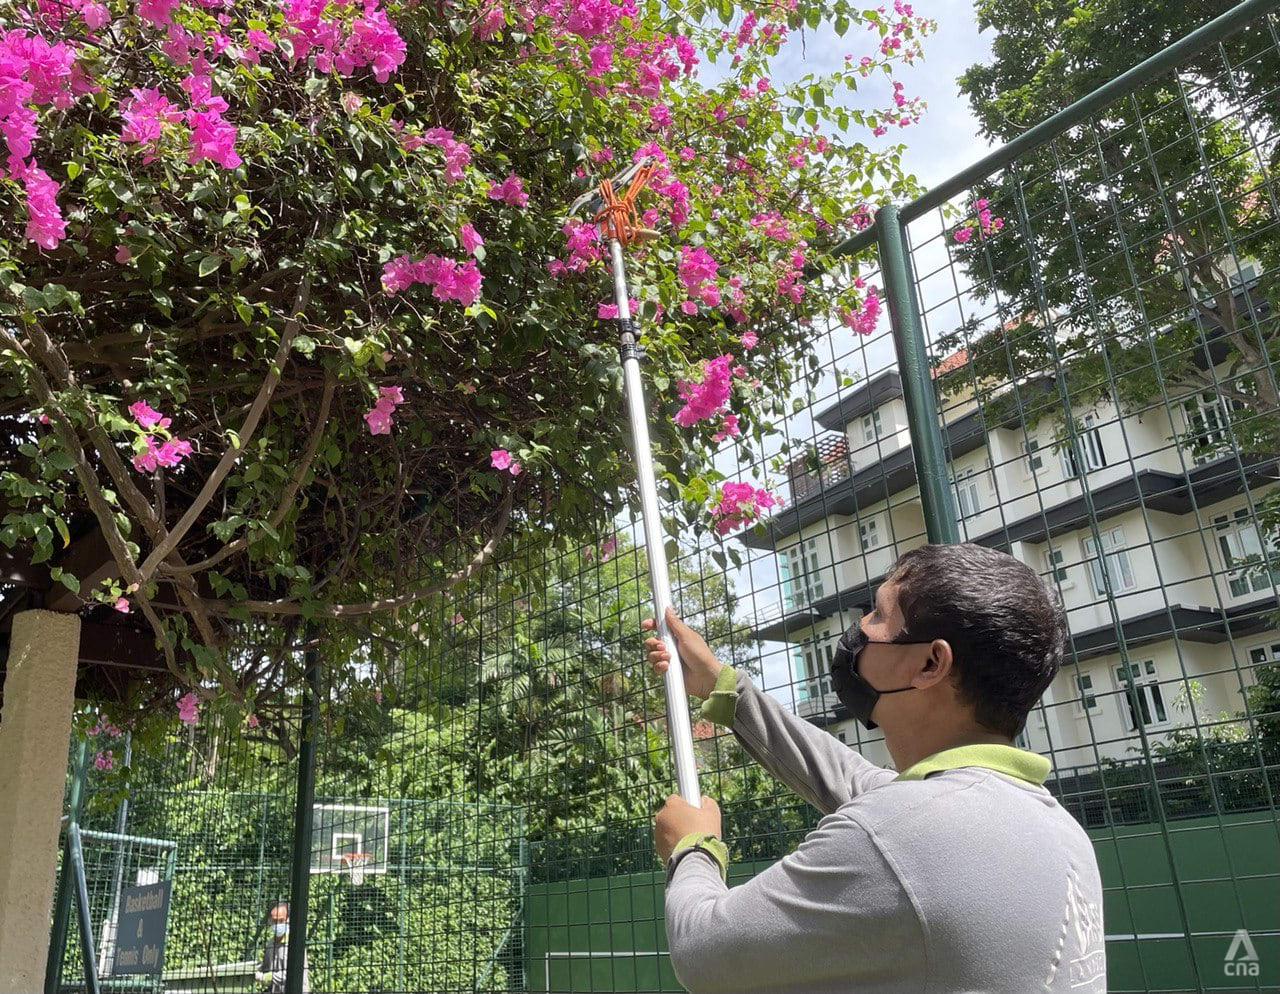 Baseline wages for landscape maintenance workers set to rise by 6% on average each year